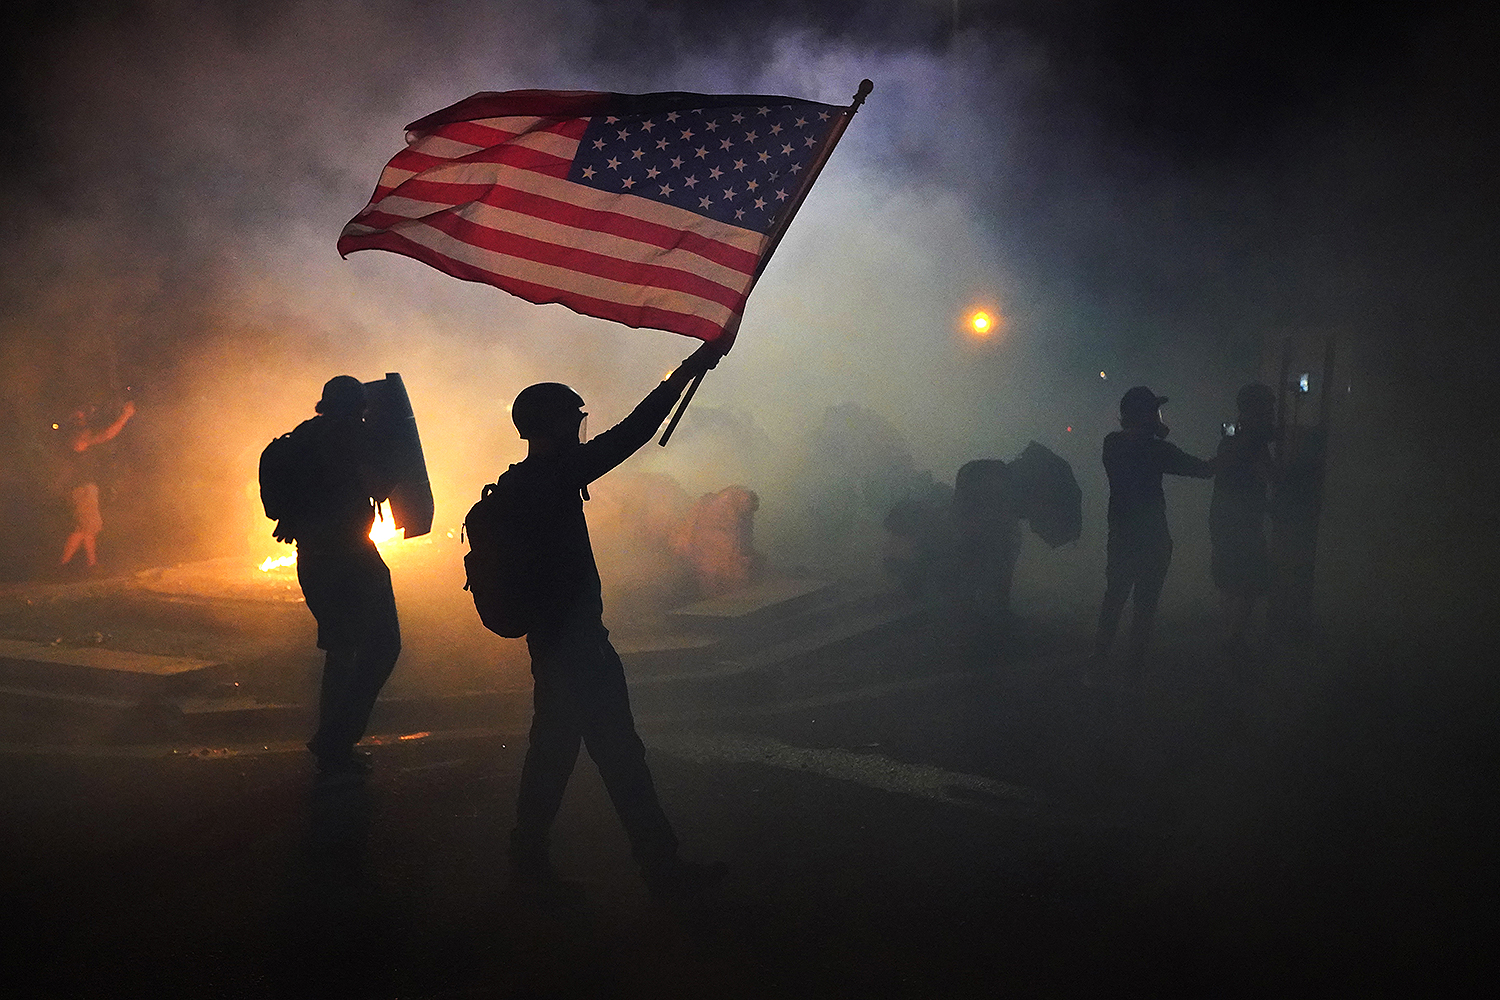 A protester waves an American flag while walking through tear gas fired by federal officers during a protest in front of the Mark O. Hatfield U.S. Courthouse in Portland, Oregon, on July 21. Nathan Howard/Getty Images